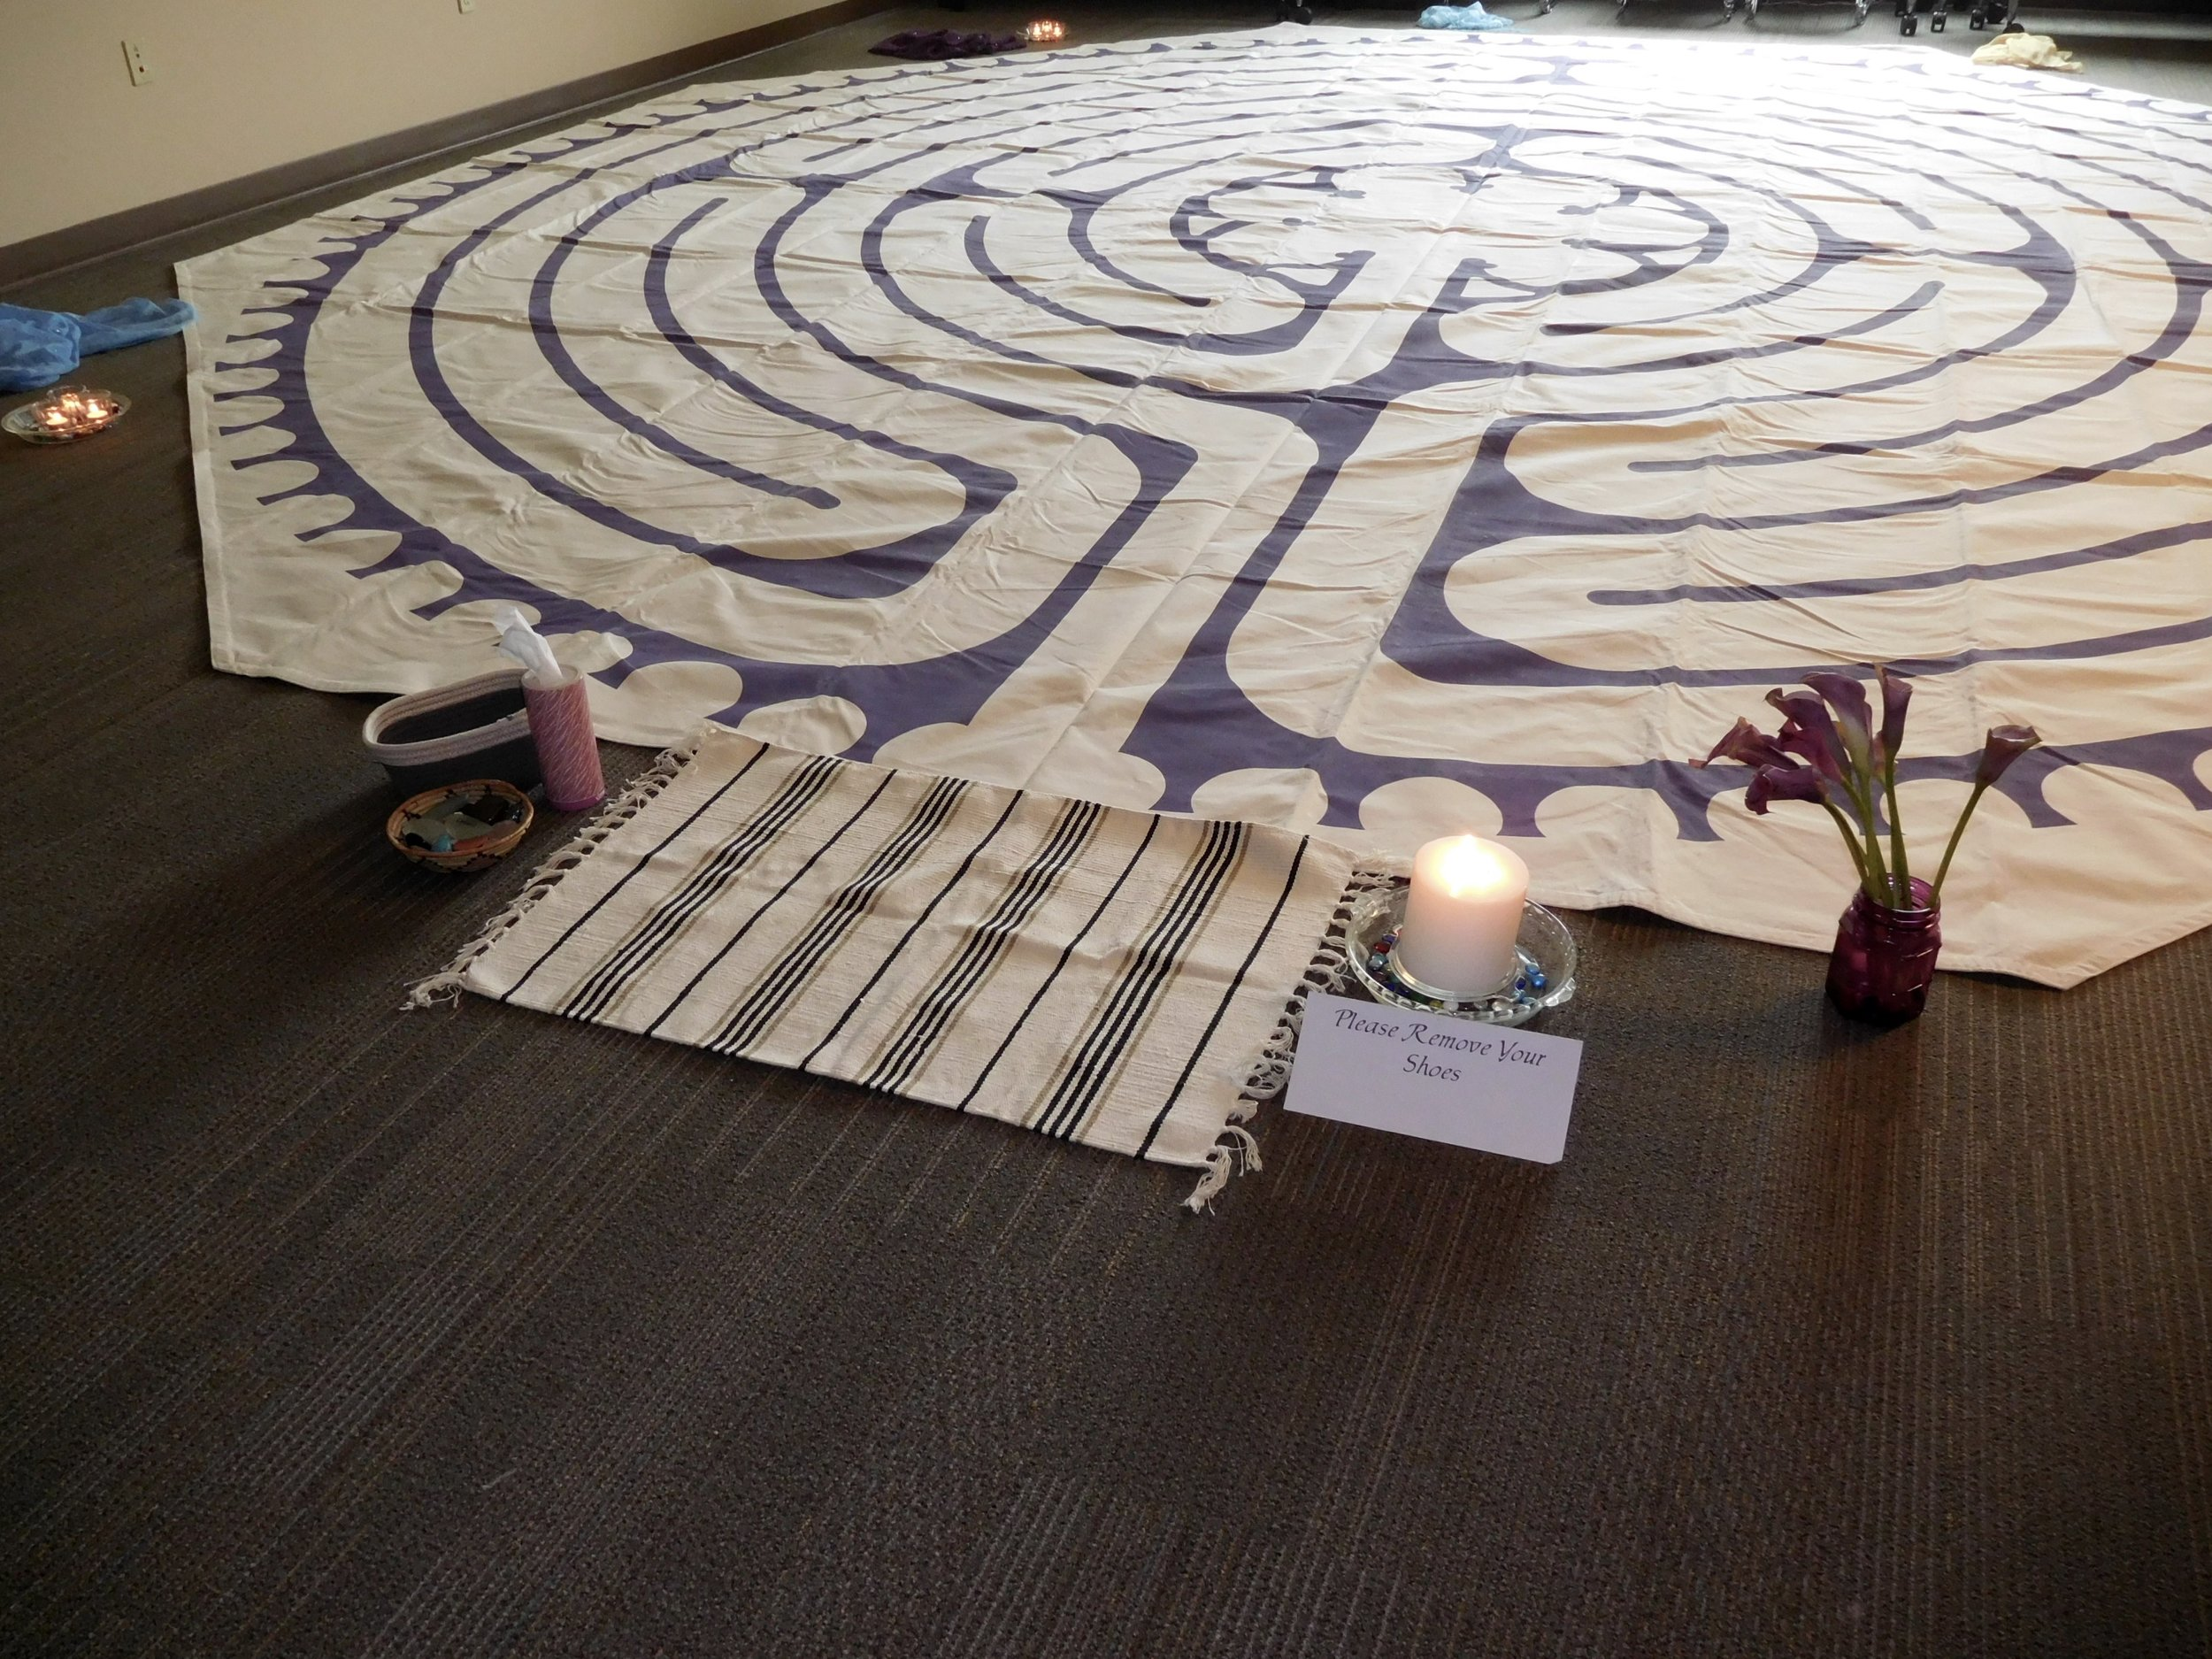 Labyrinth set up for in-service for Serenity Hospice.